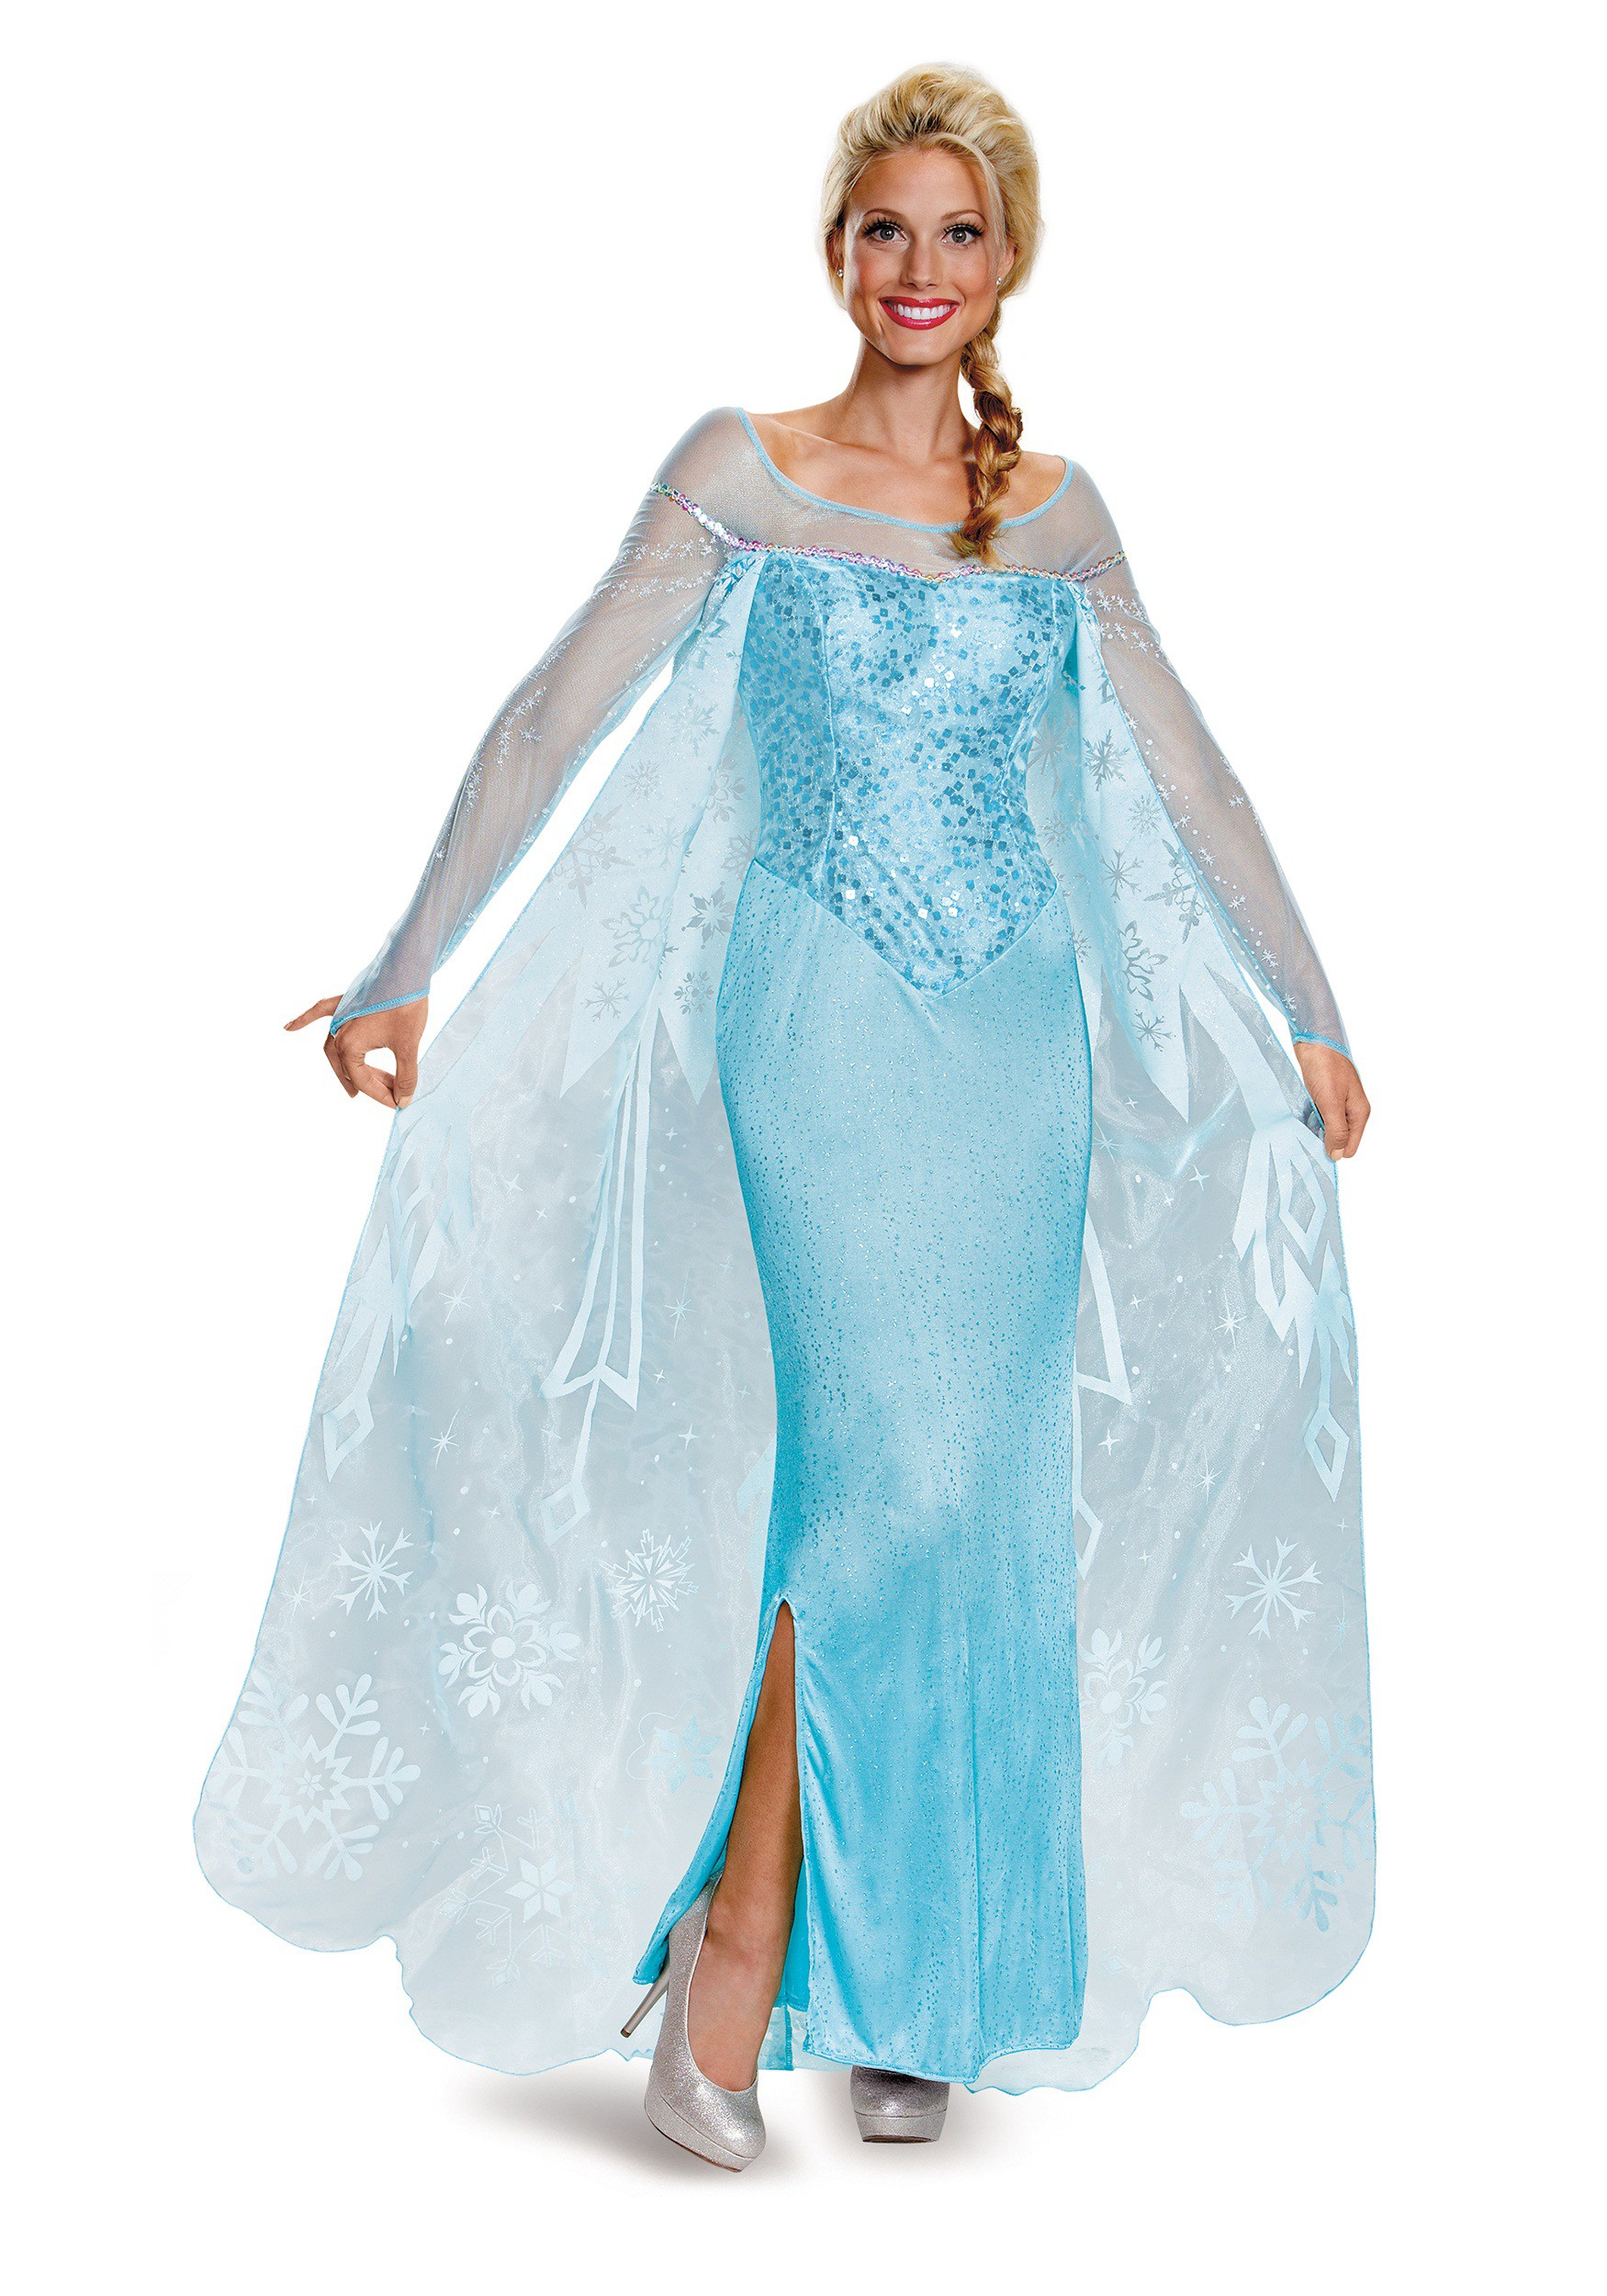 sc 1 st  Halloween Costumes : halloween costume elsa frozen  - Germanpascual.Com